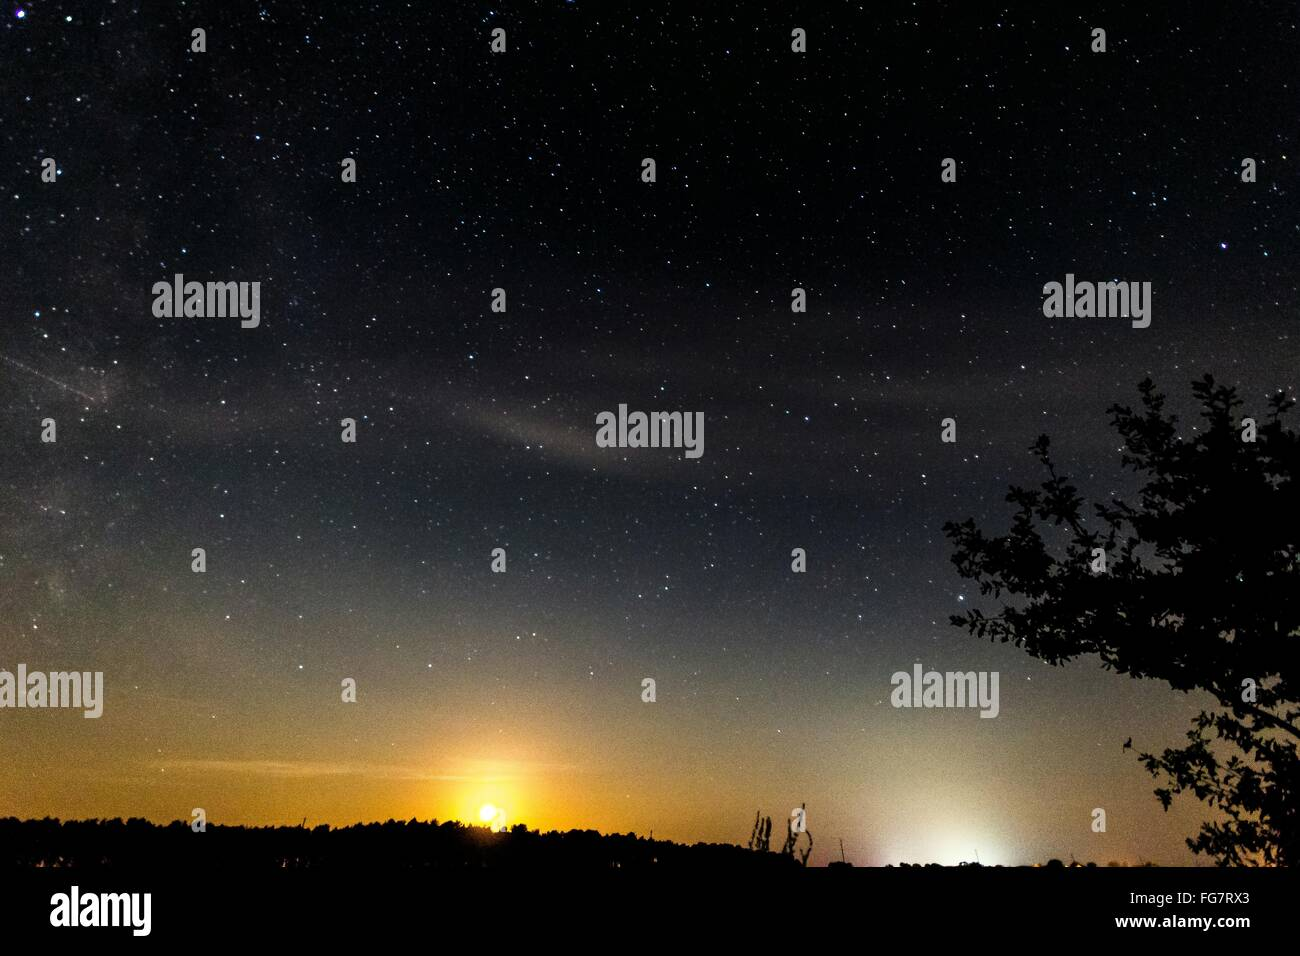 Scenic View Of Star Field - Stock Image